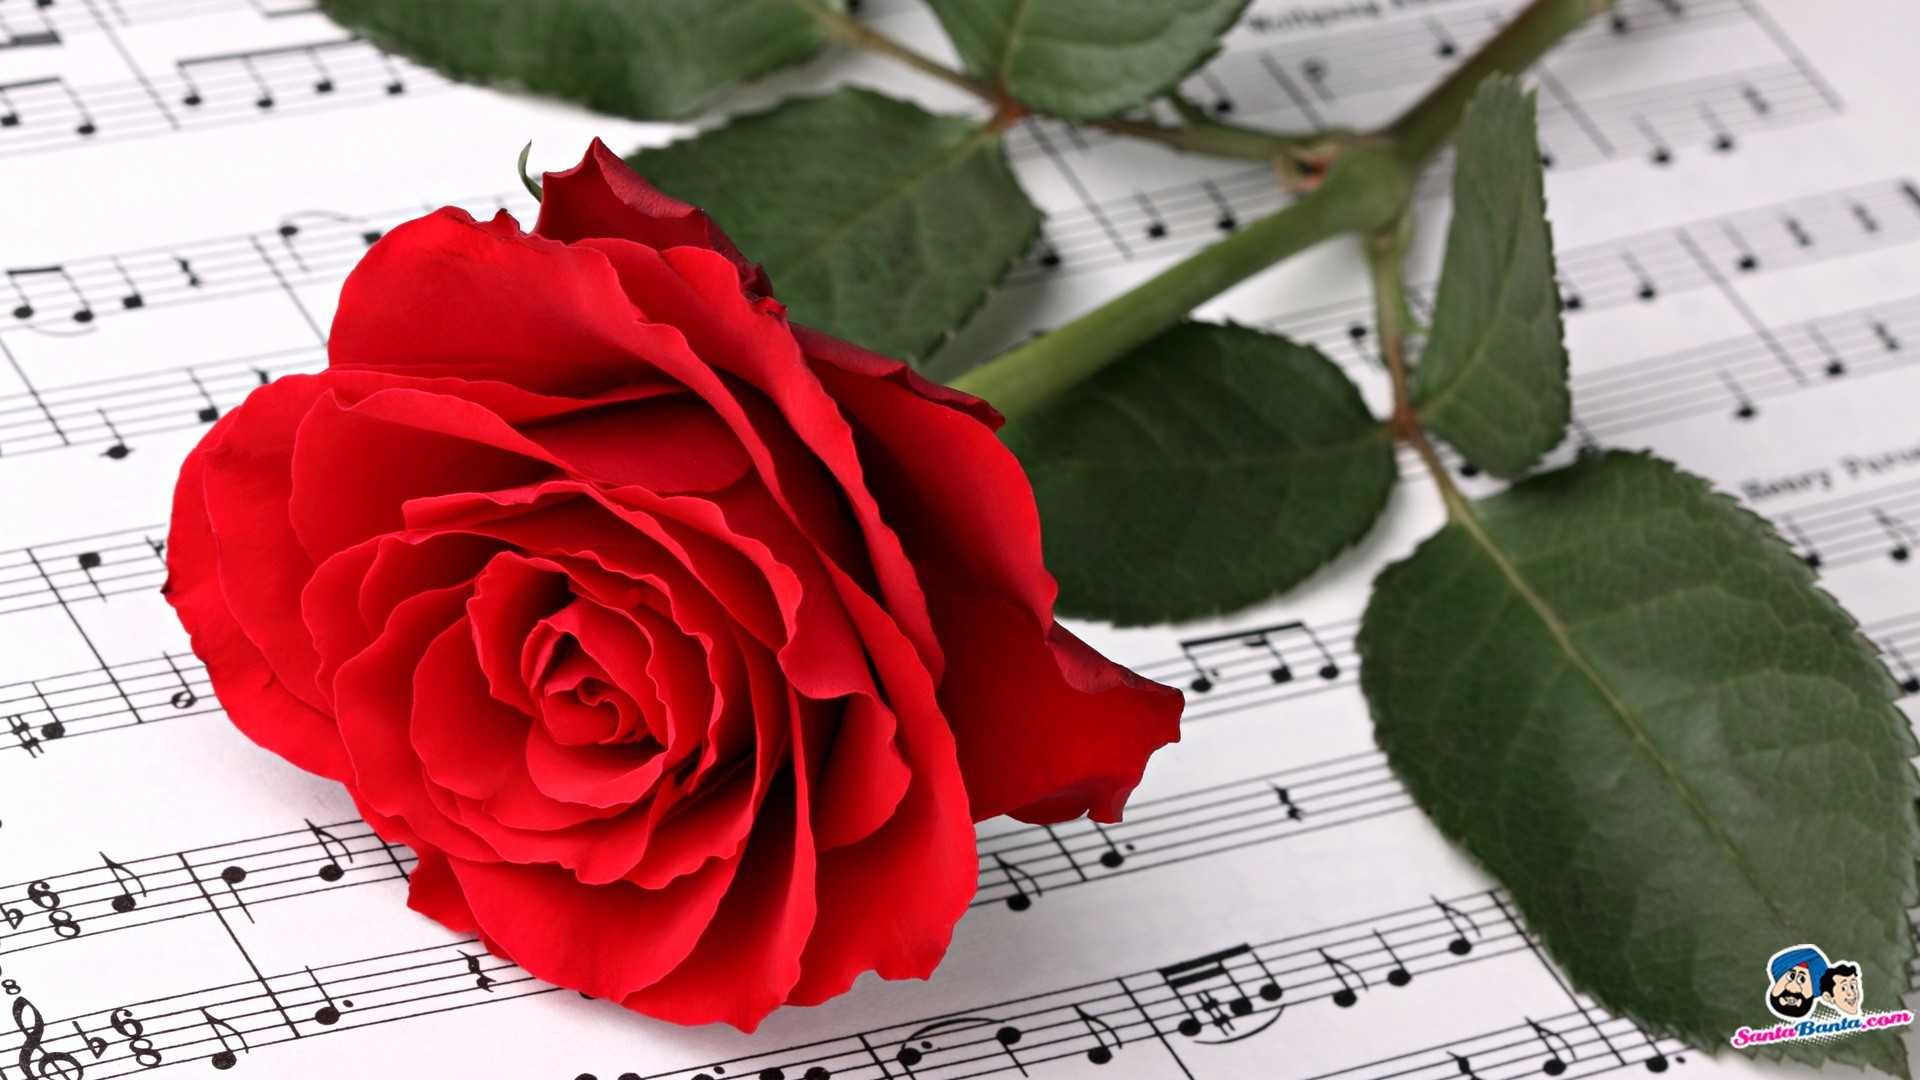 Roses Love Valentine Red Rose Flower Wallpapers Free - Red Rose Single Pic Hd - HD Wallpaper